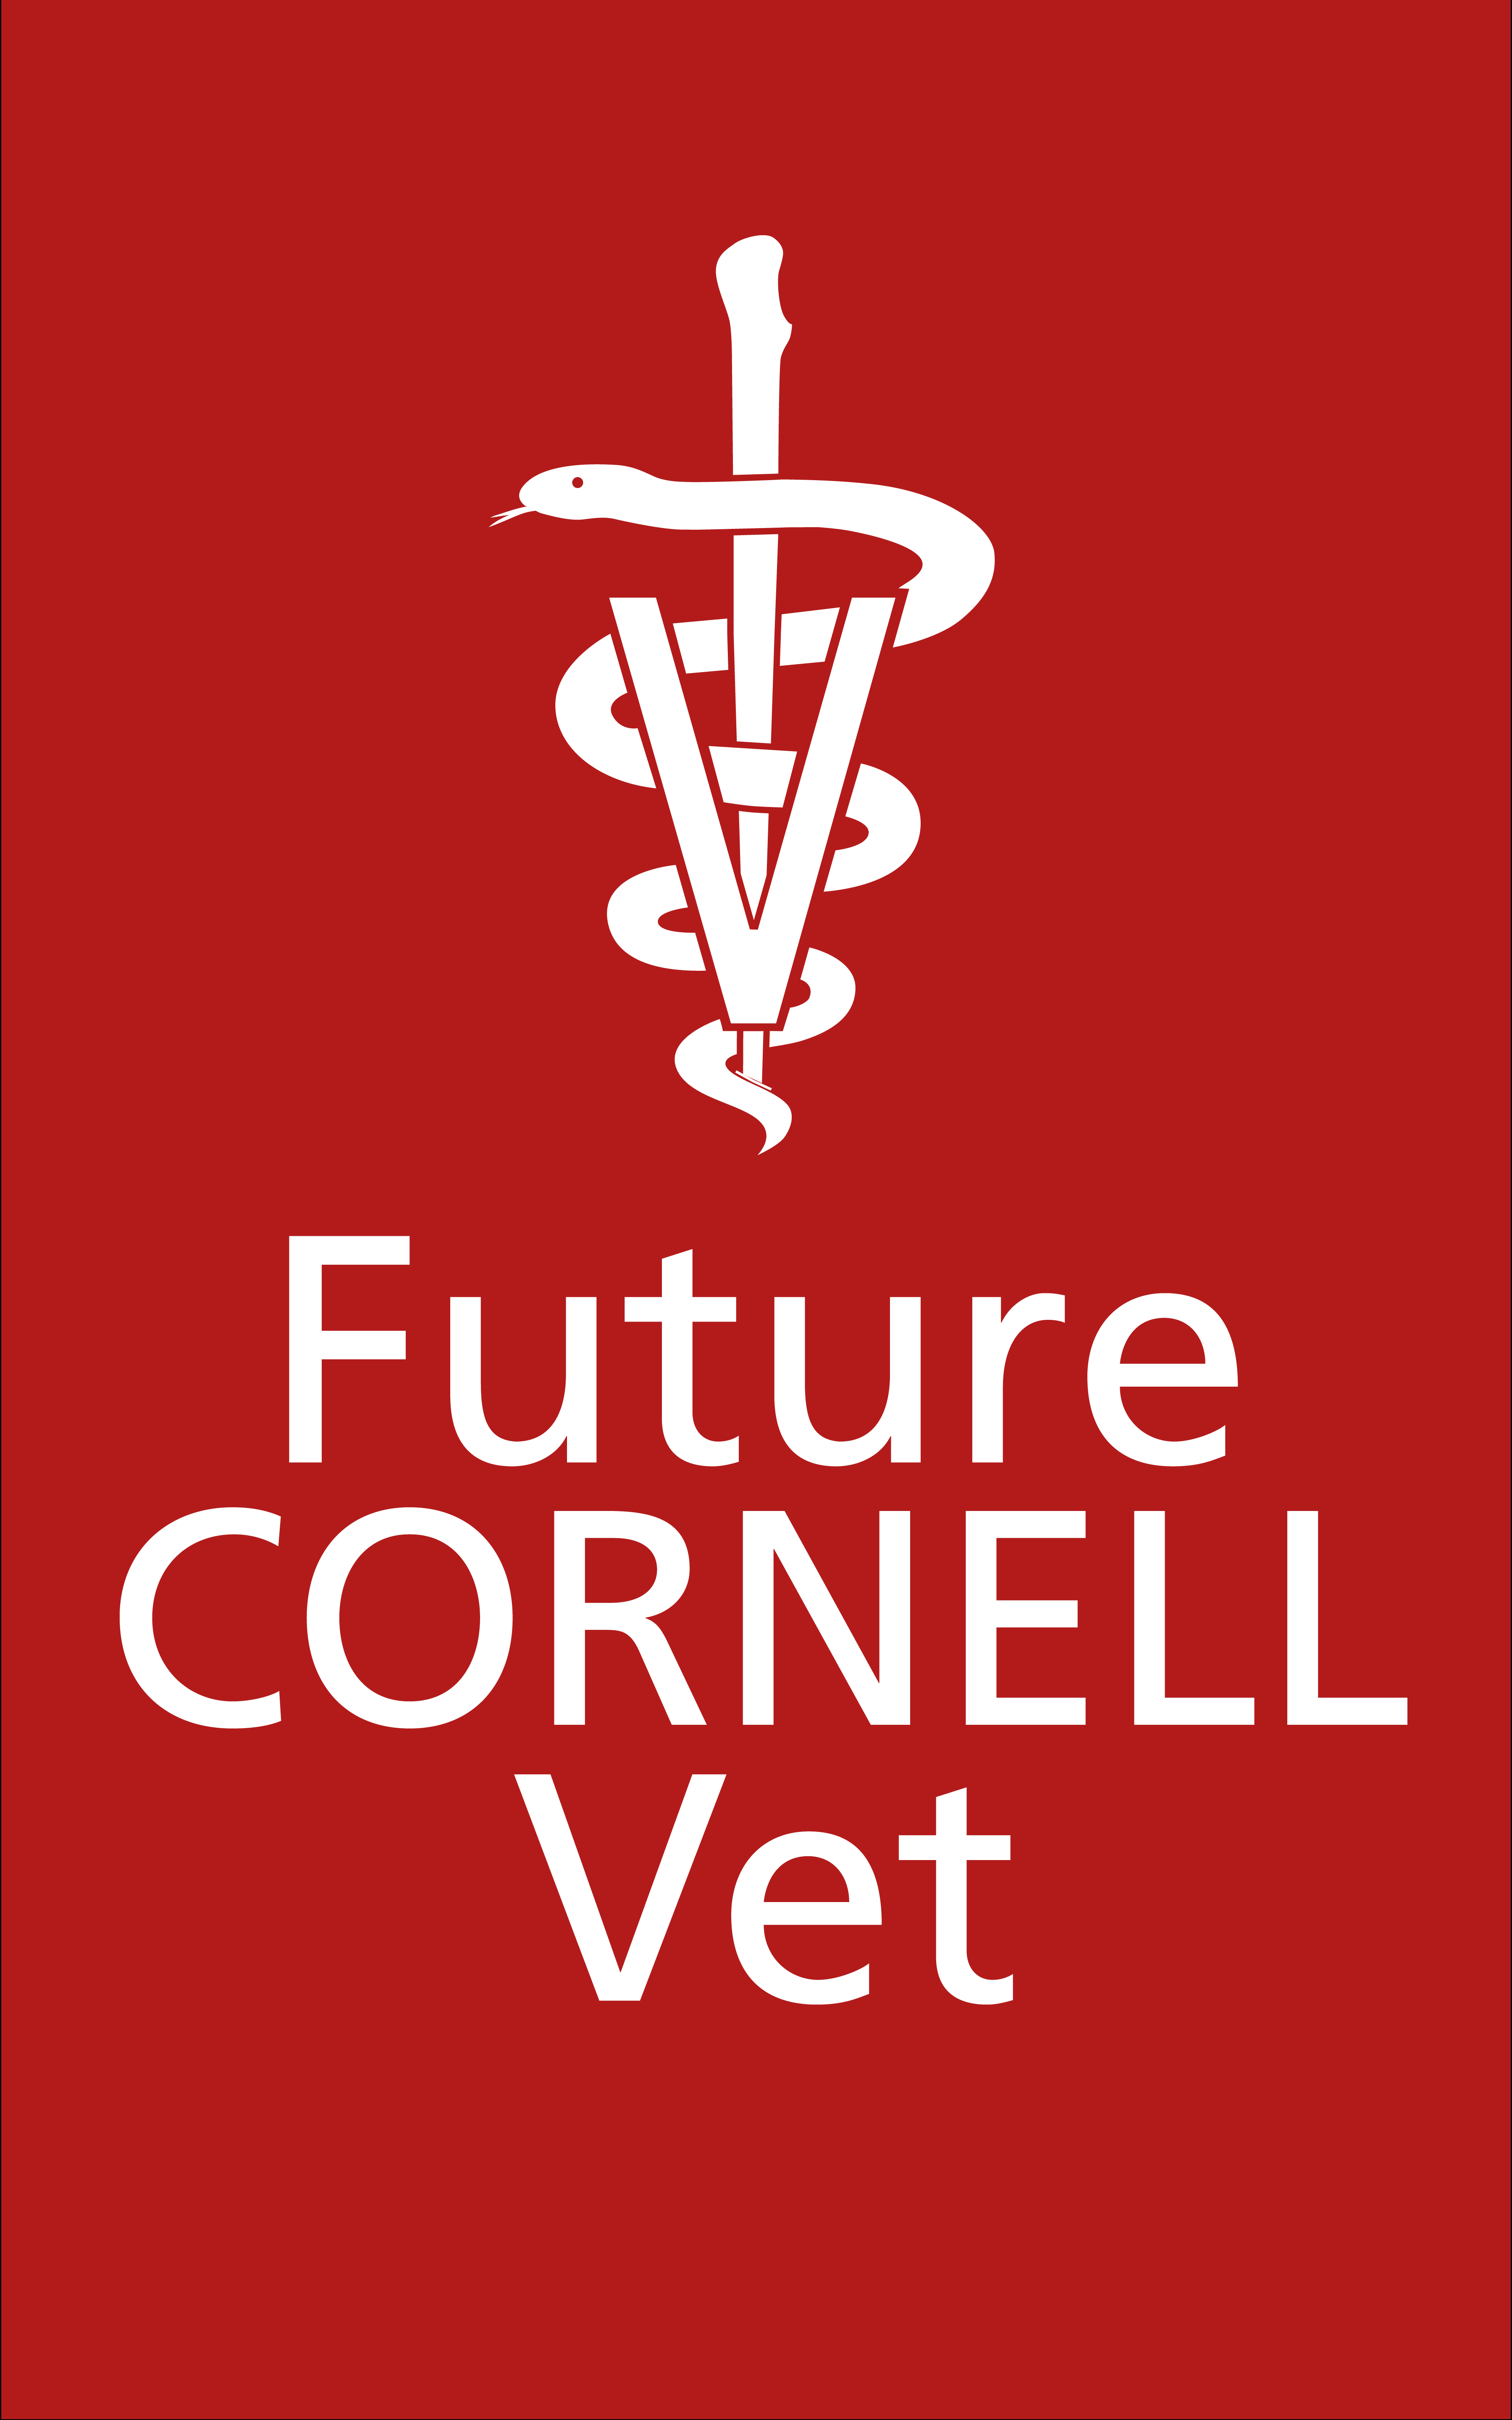 Future Cornell Vet Wallpaper